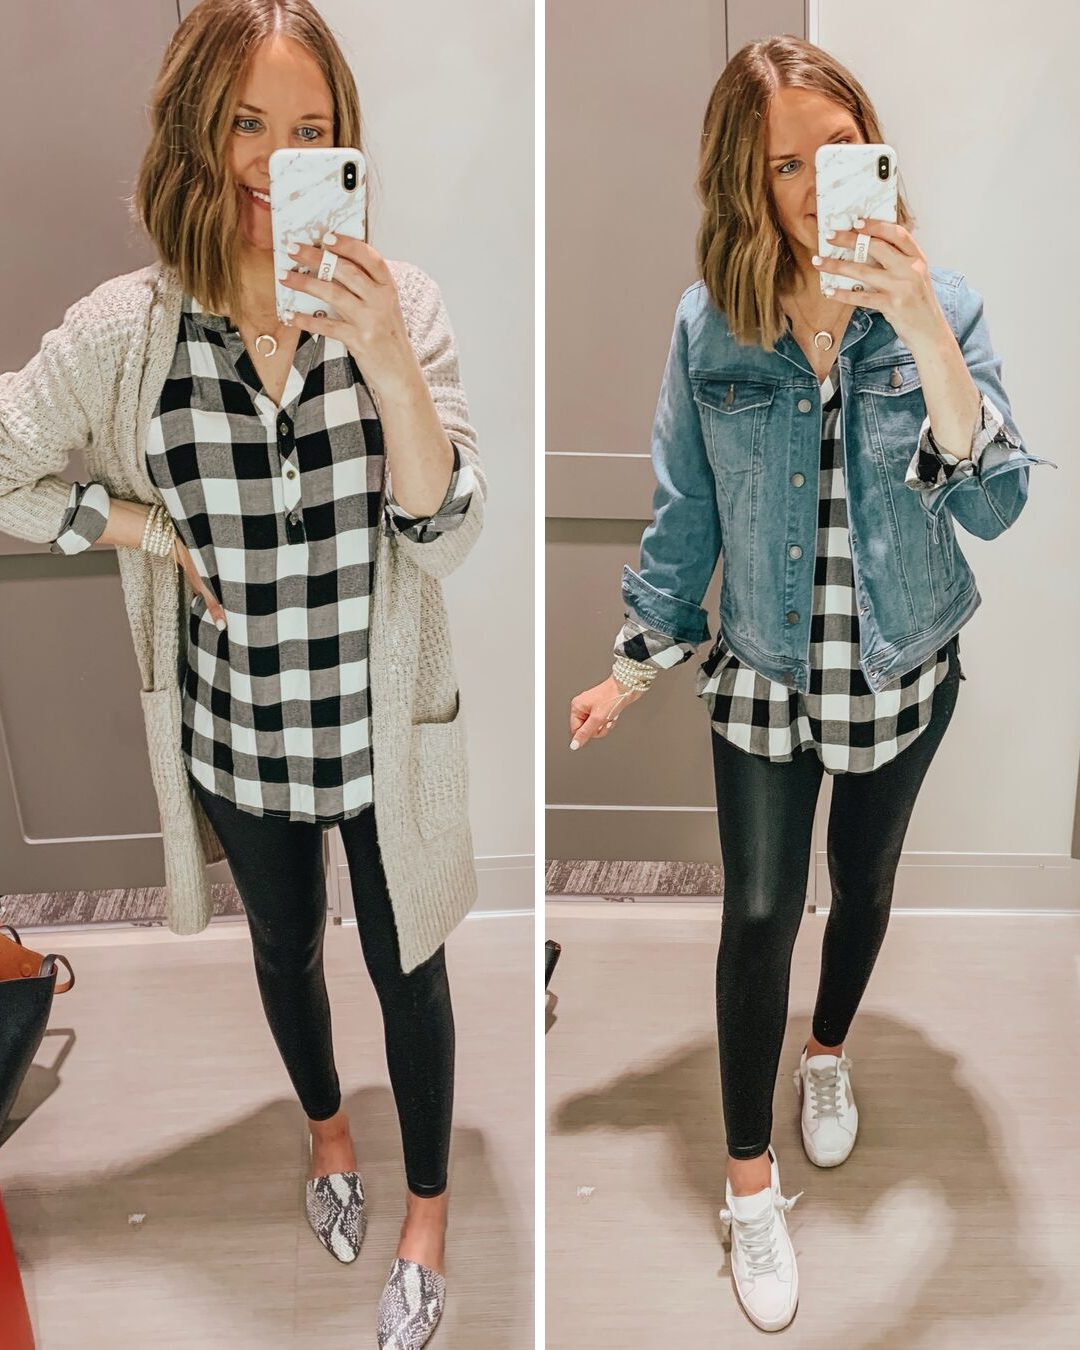 Target fall fashion preview 2019, black and white buffalo plaid tunic, Spanx faux leather leggings dupe, Wild Fable liquid leggings, long cardigan, jean jacket